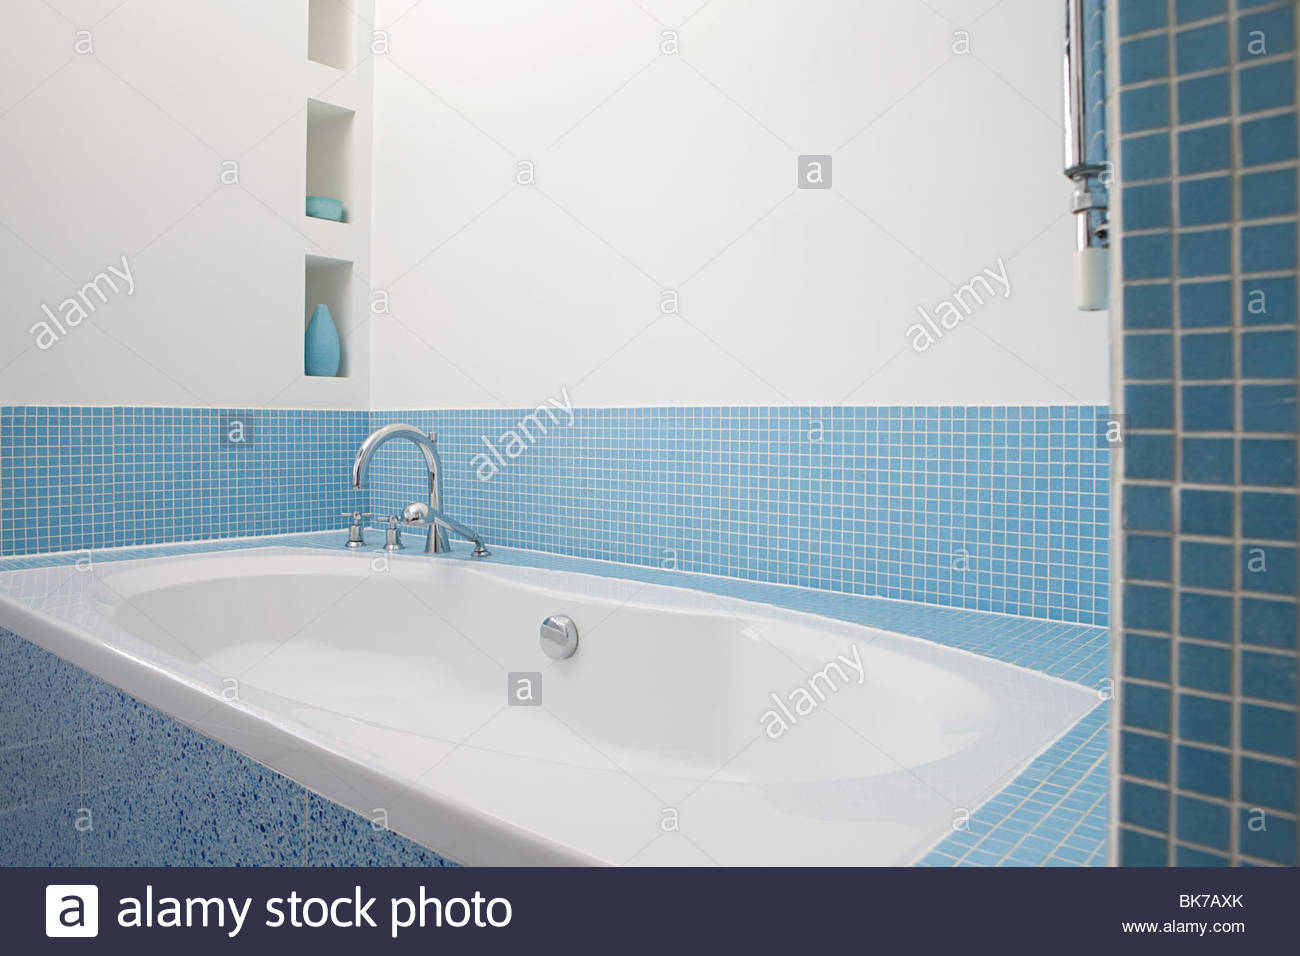 Bathtubs Stock Photos & Bathtubs Stock Images - Alamy